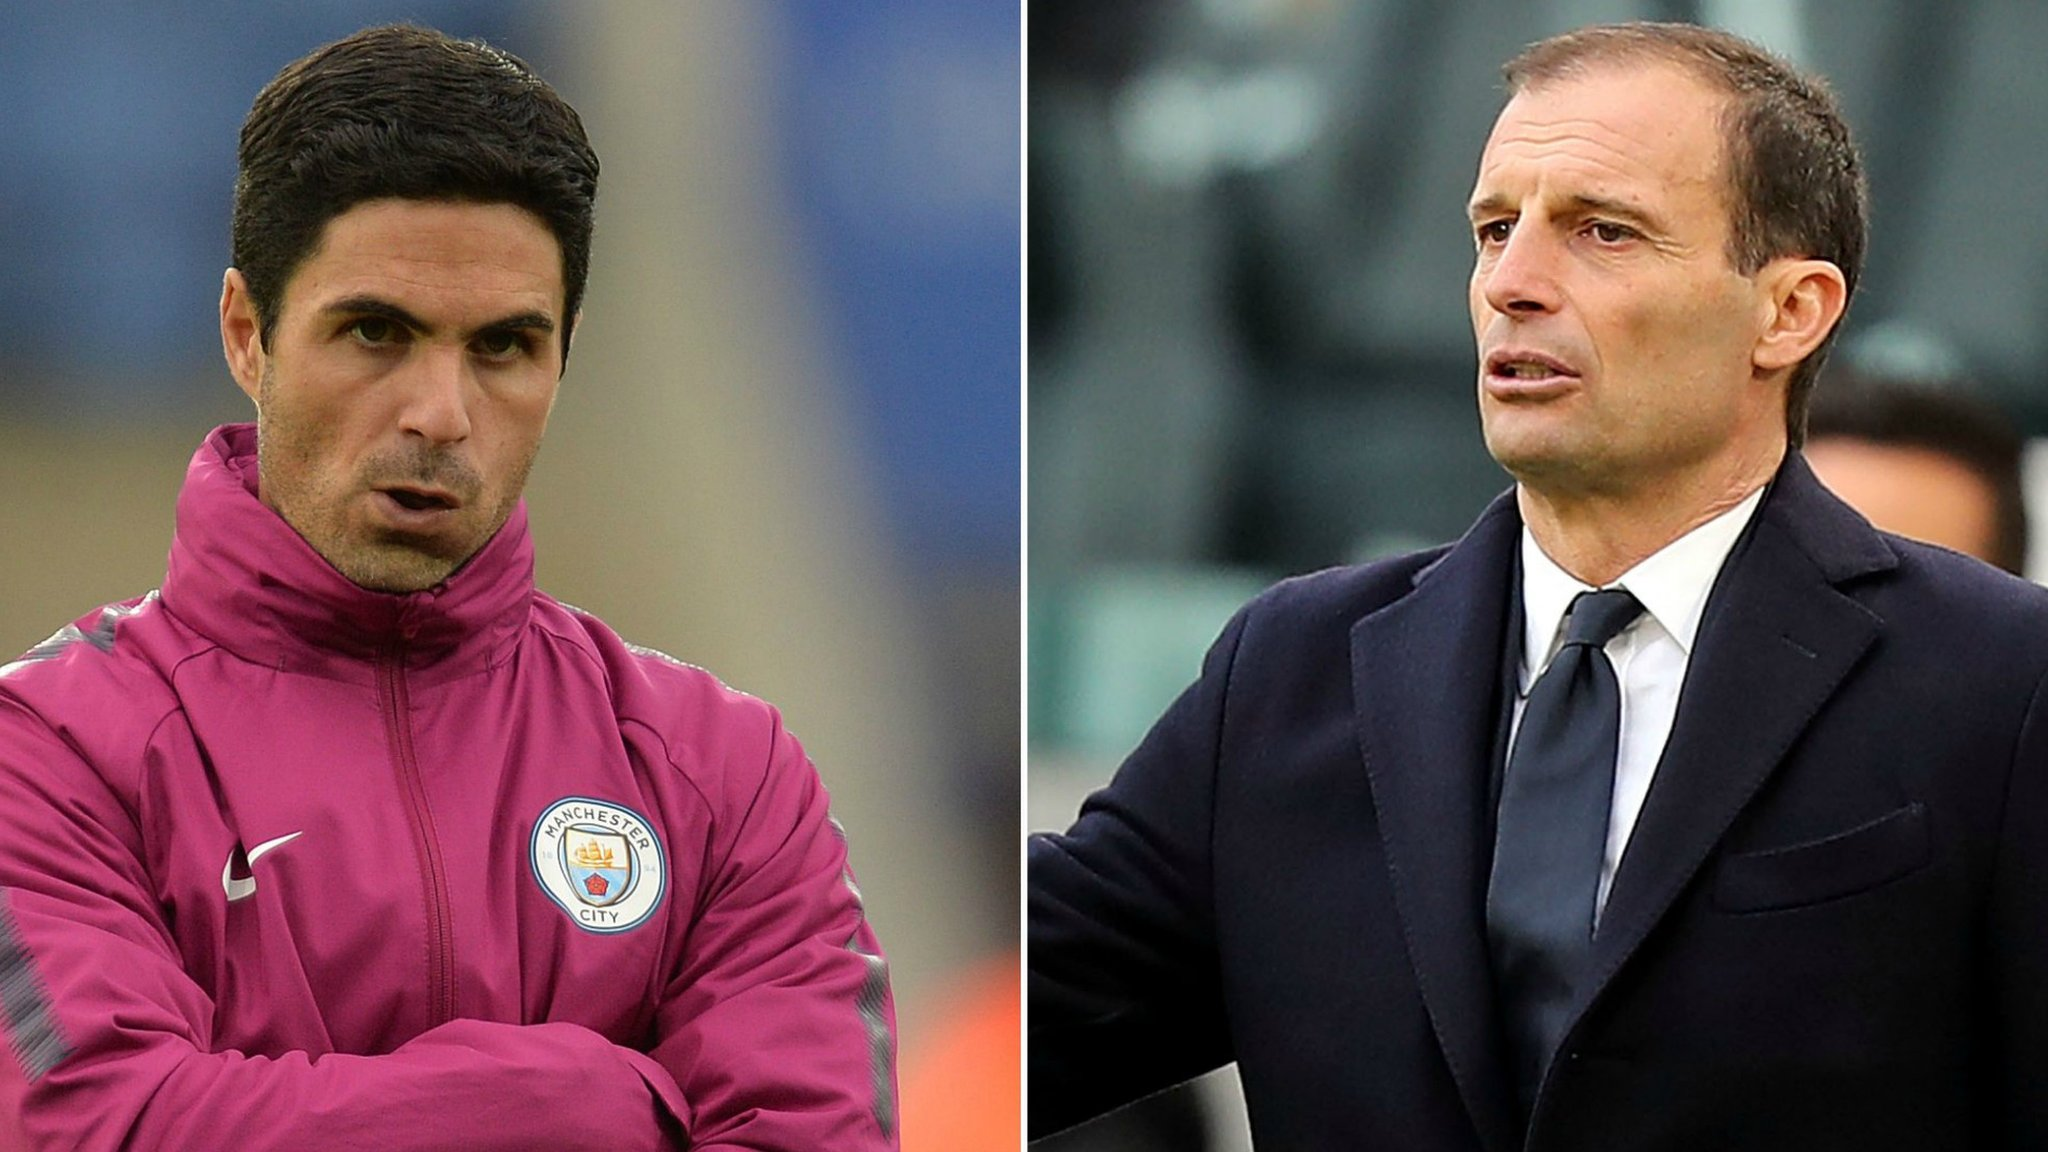 Arteta the frontrunner but is Allegri still in mix? Latest on Arsenal manager hunt